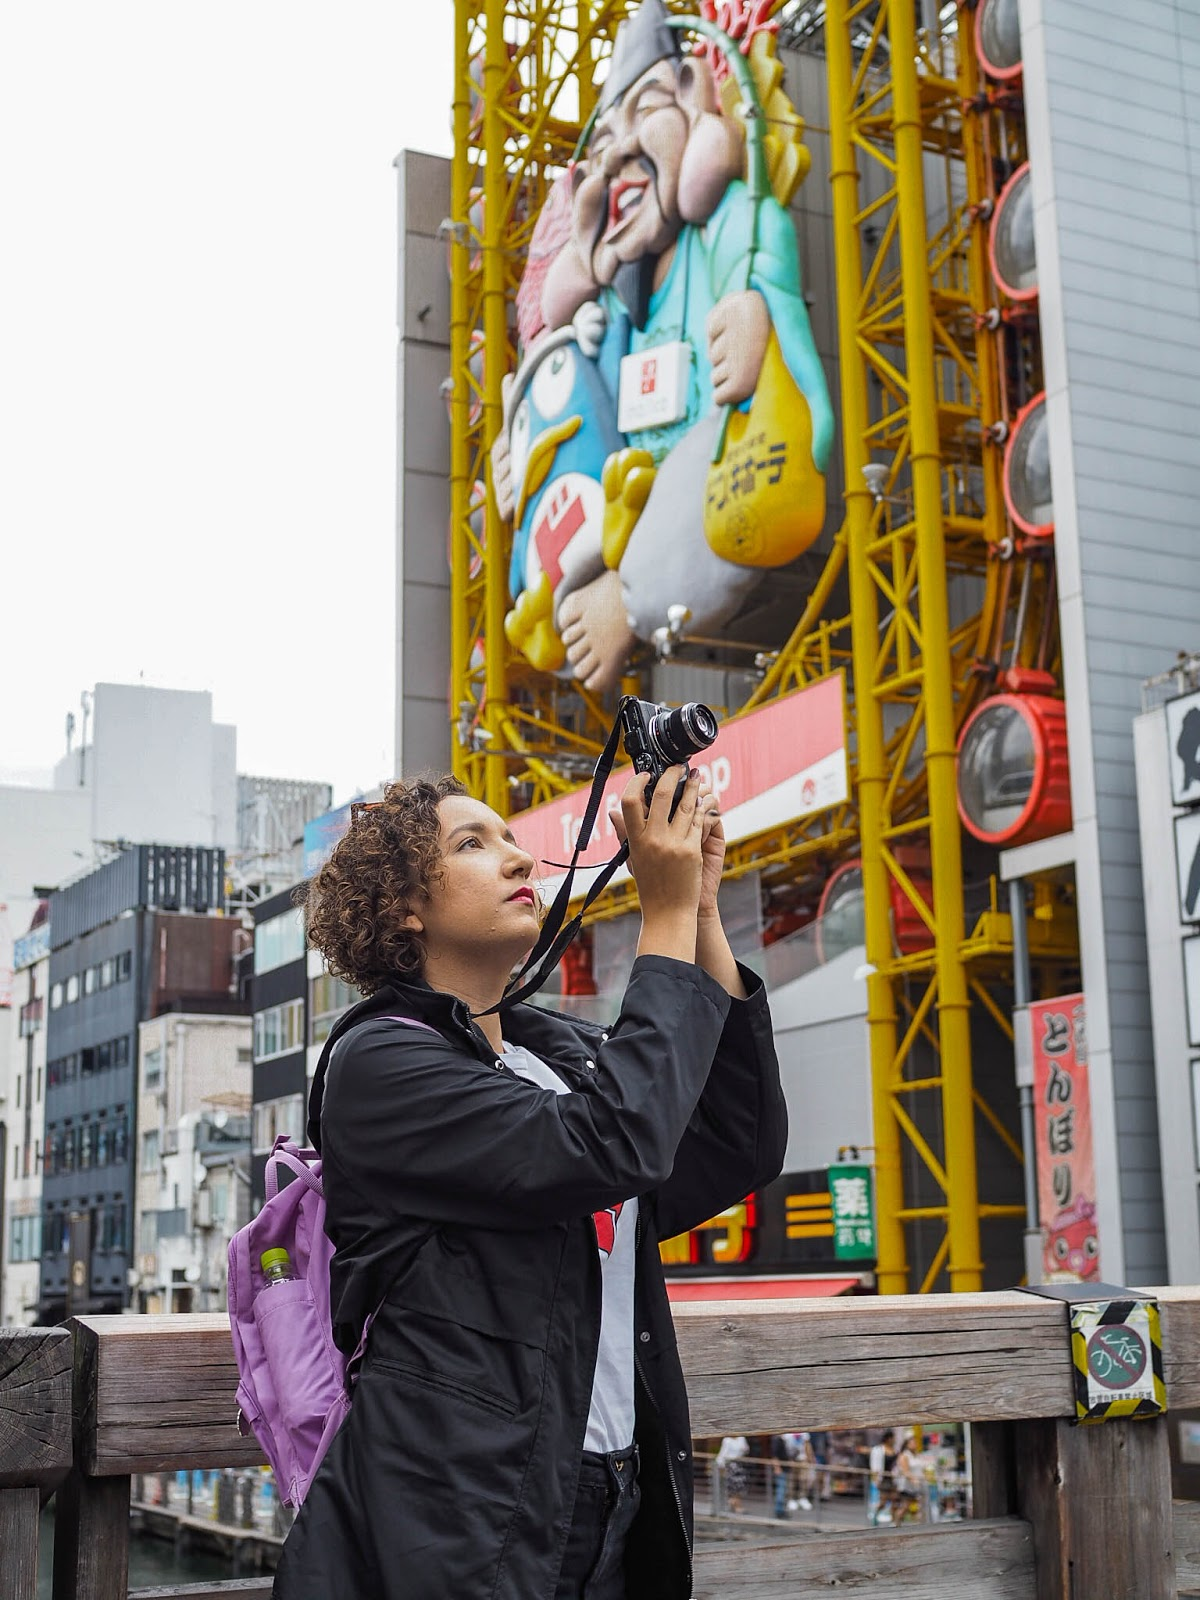 Taking a photo on the bridge over Dotonbori canal in Osaka